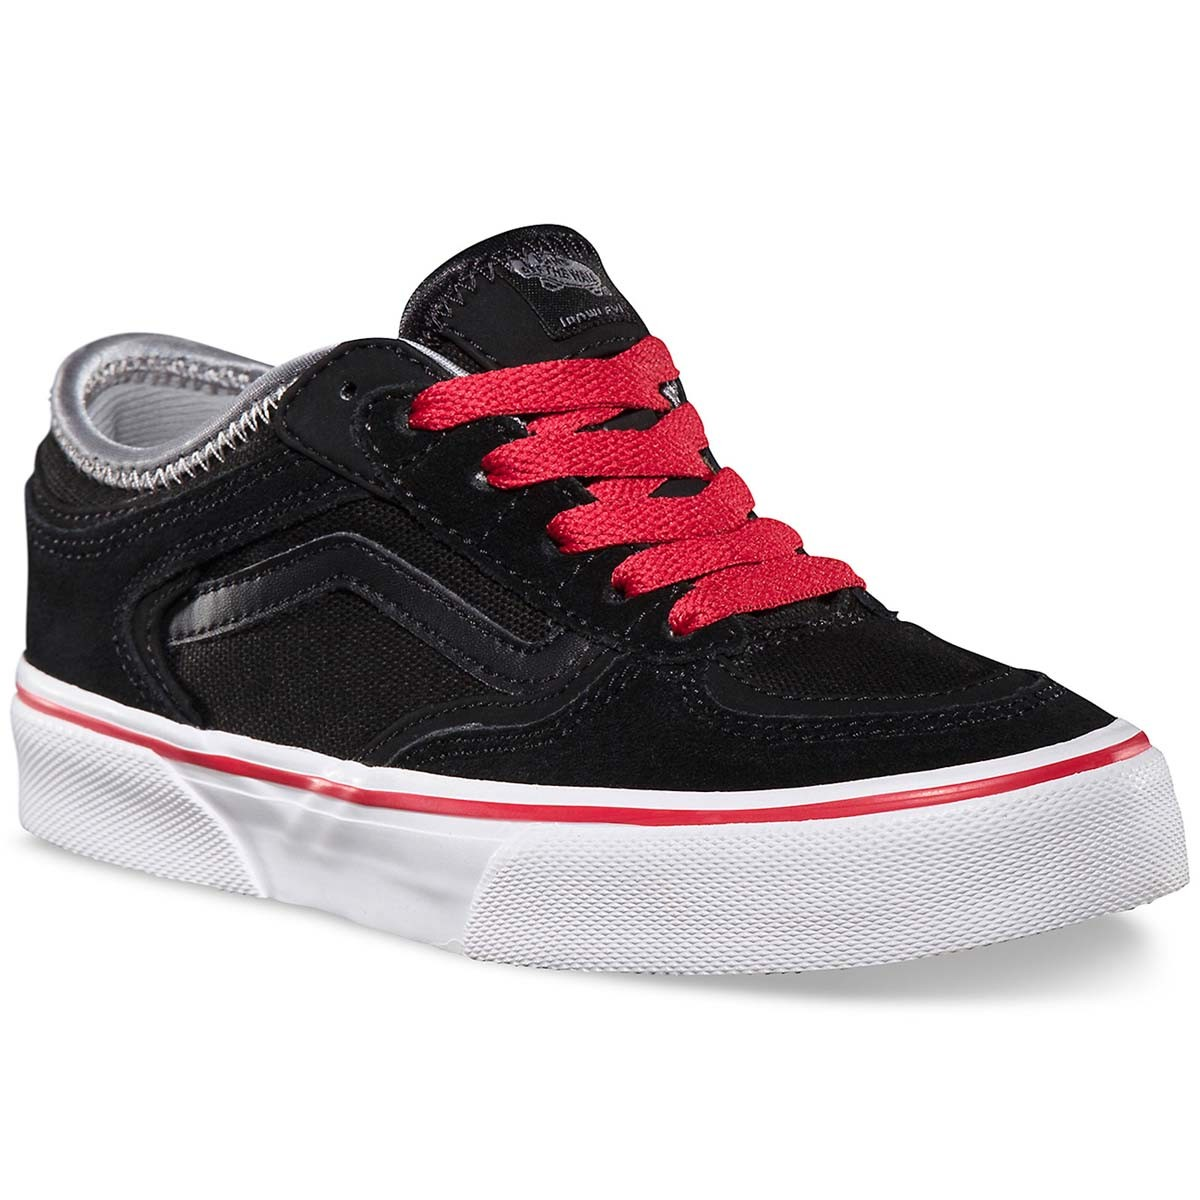 Vans Geoff Rowley Pro Youth Shoes - Black/Black/Red - 4.0